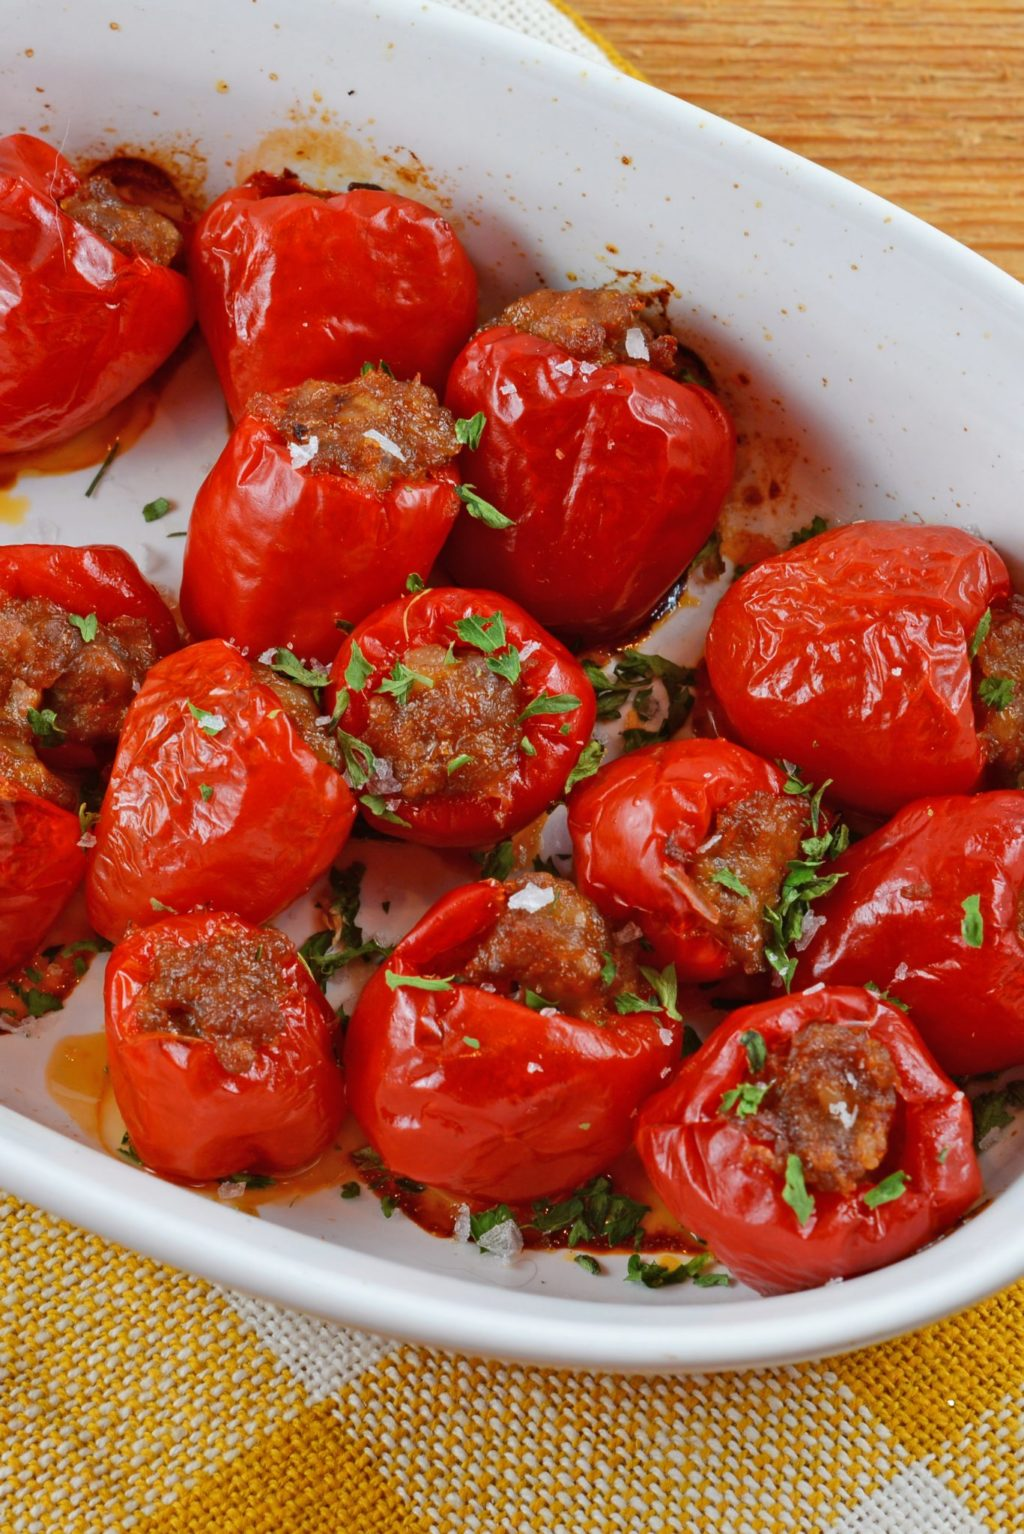 The Best Game Day Snacks - including Sausage Stuffed Cherry Peppers and more game day recipes